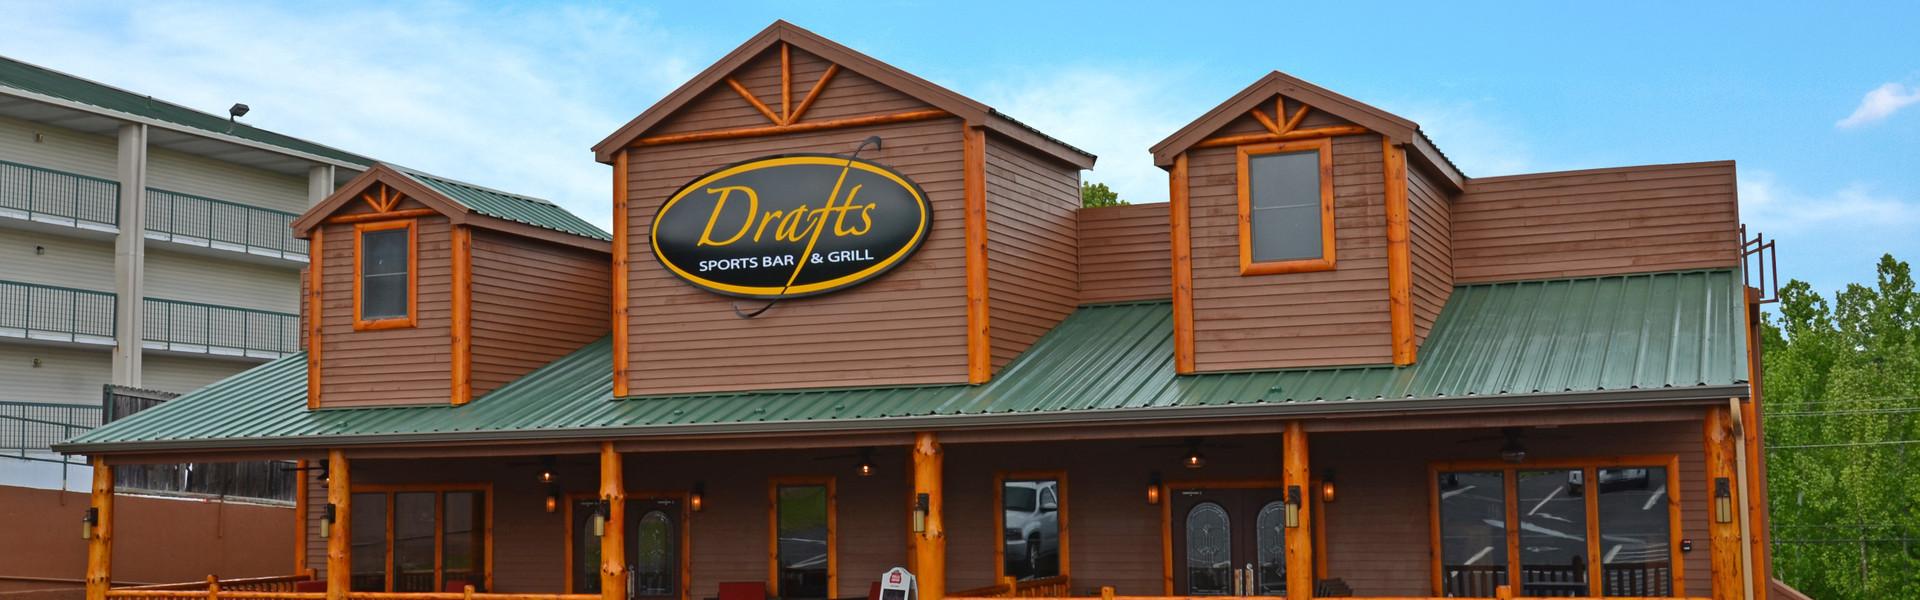 Outside the best sports bar in Branson, MO | Menu For Drafts Sports Grill | Westgate Branson Woods Resort